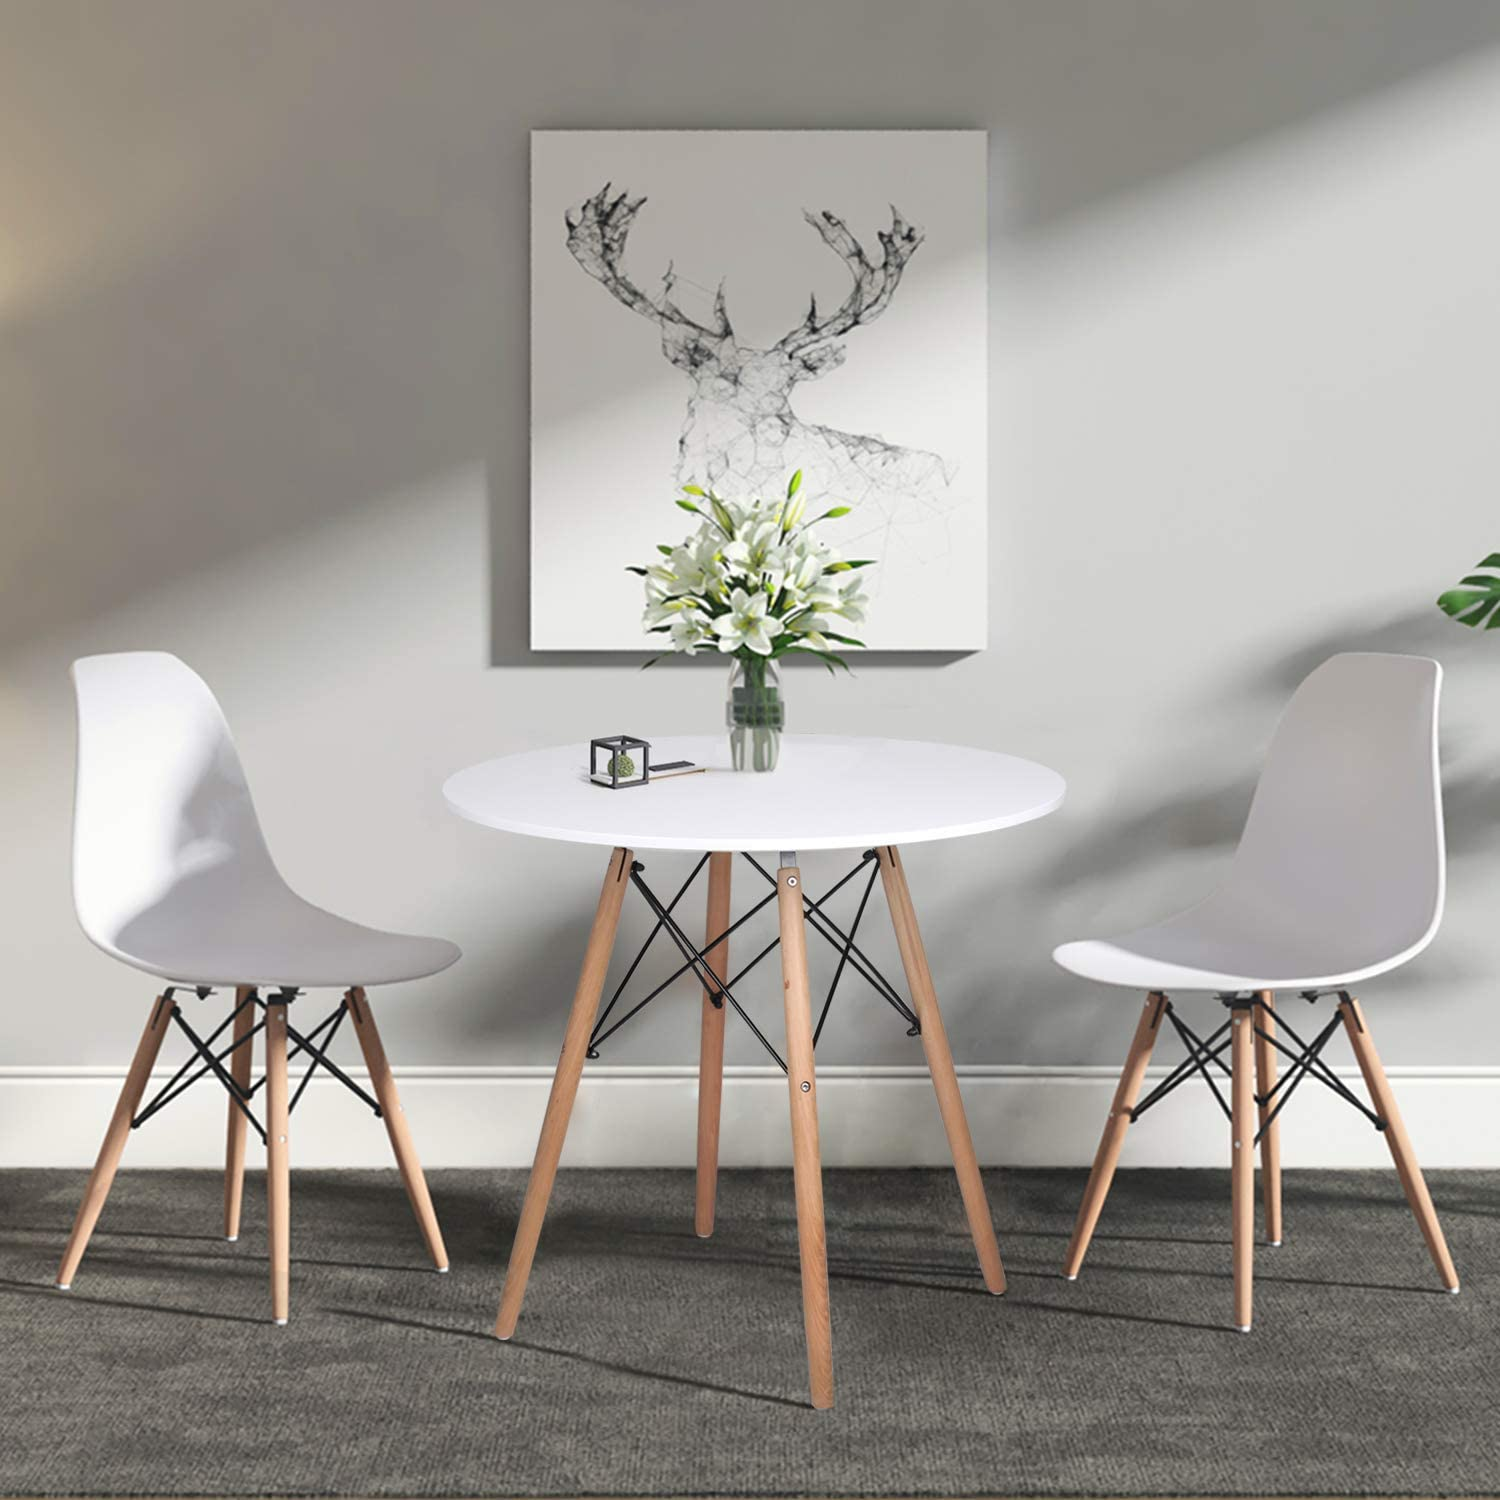 Dining Table and Chairs Set of 4,Glass Grey Kitchen Table and 4 Faux Leather Padded Chairs Kitchen Dining Table Set Round Table 80cm+2 Chairs